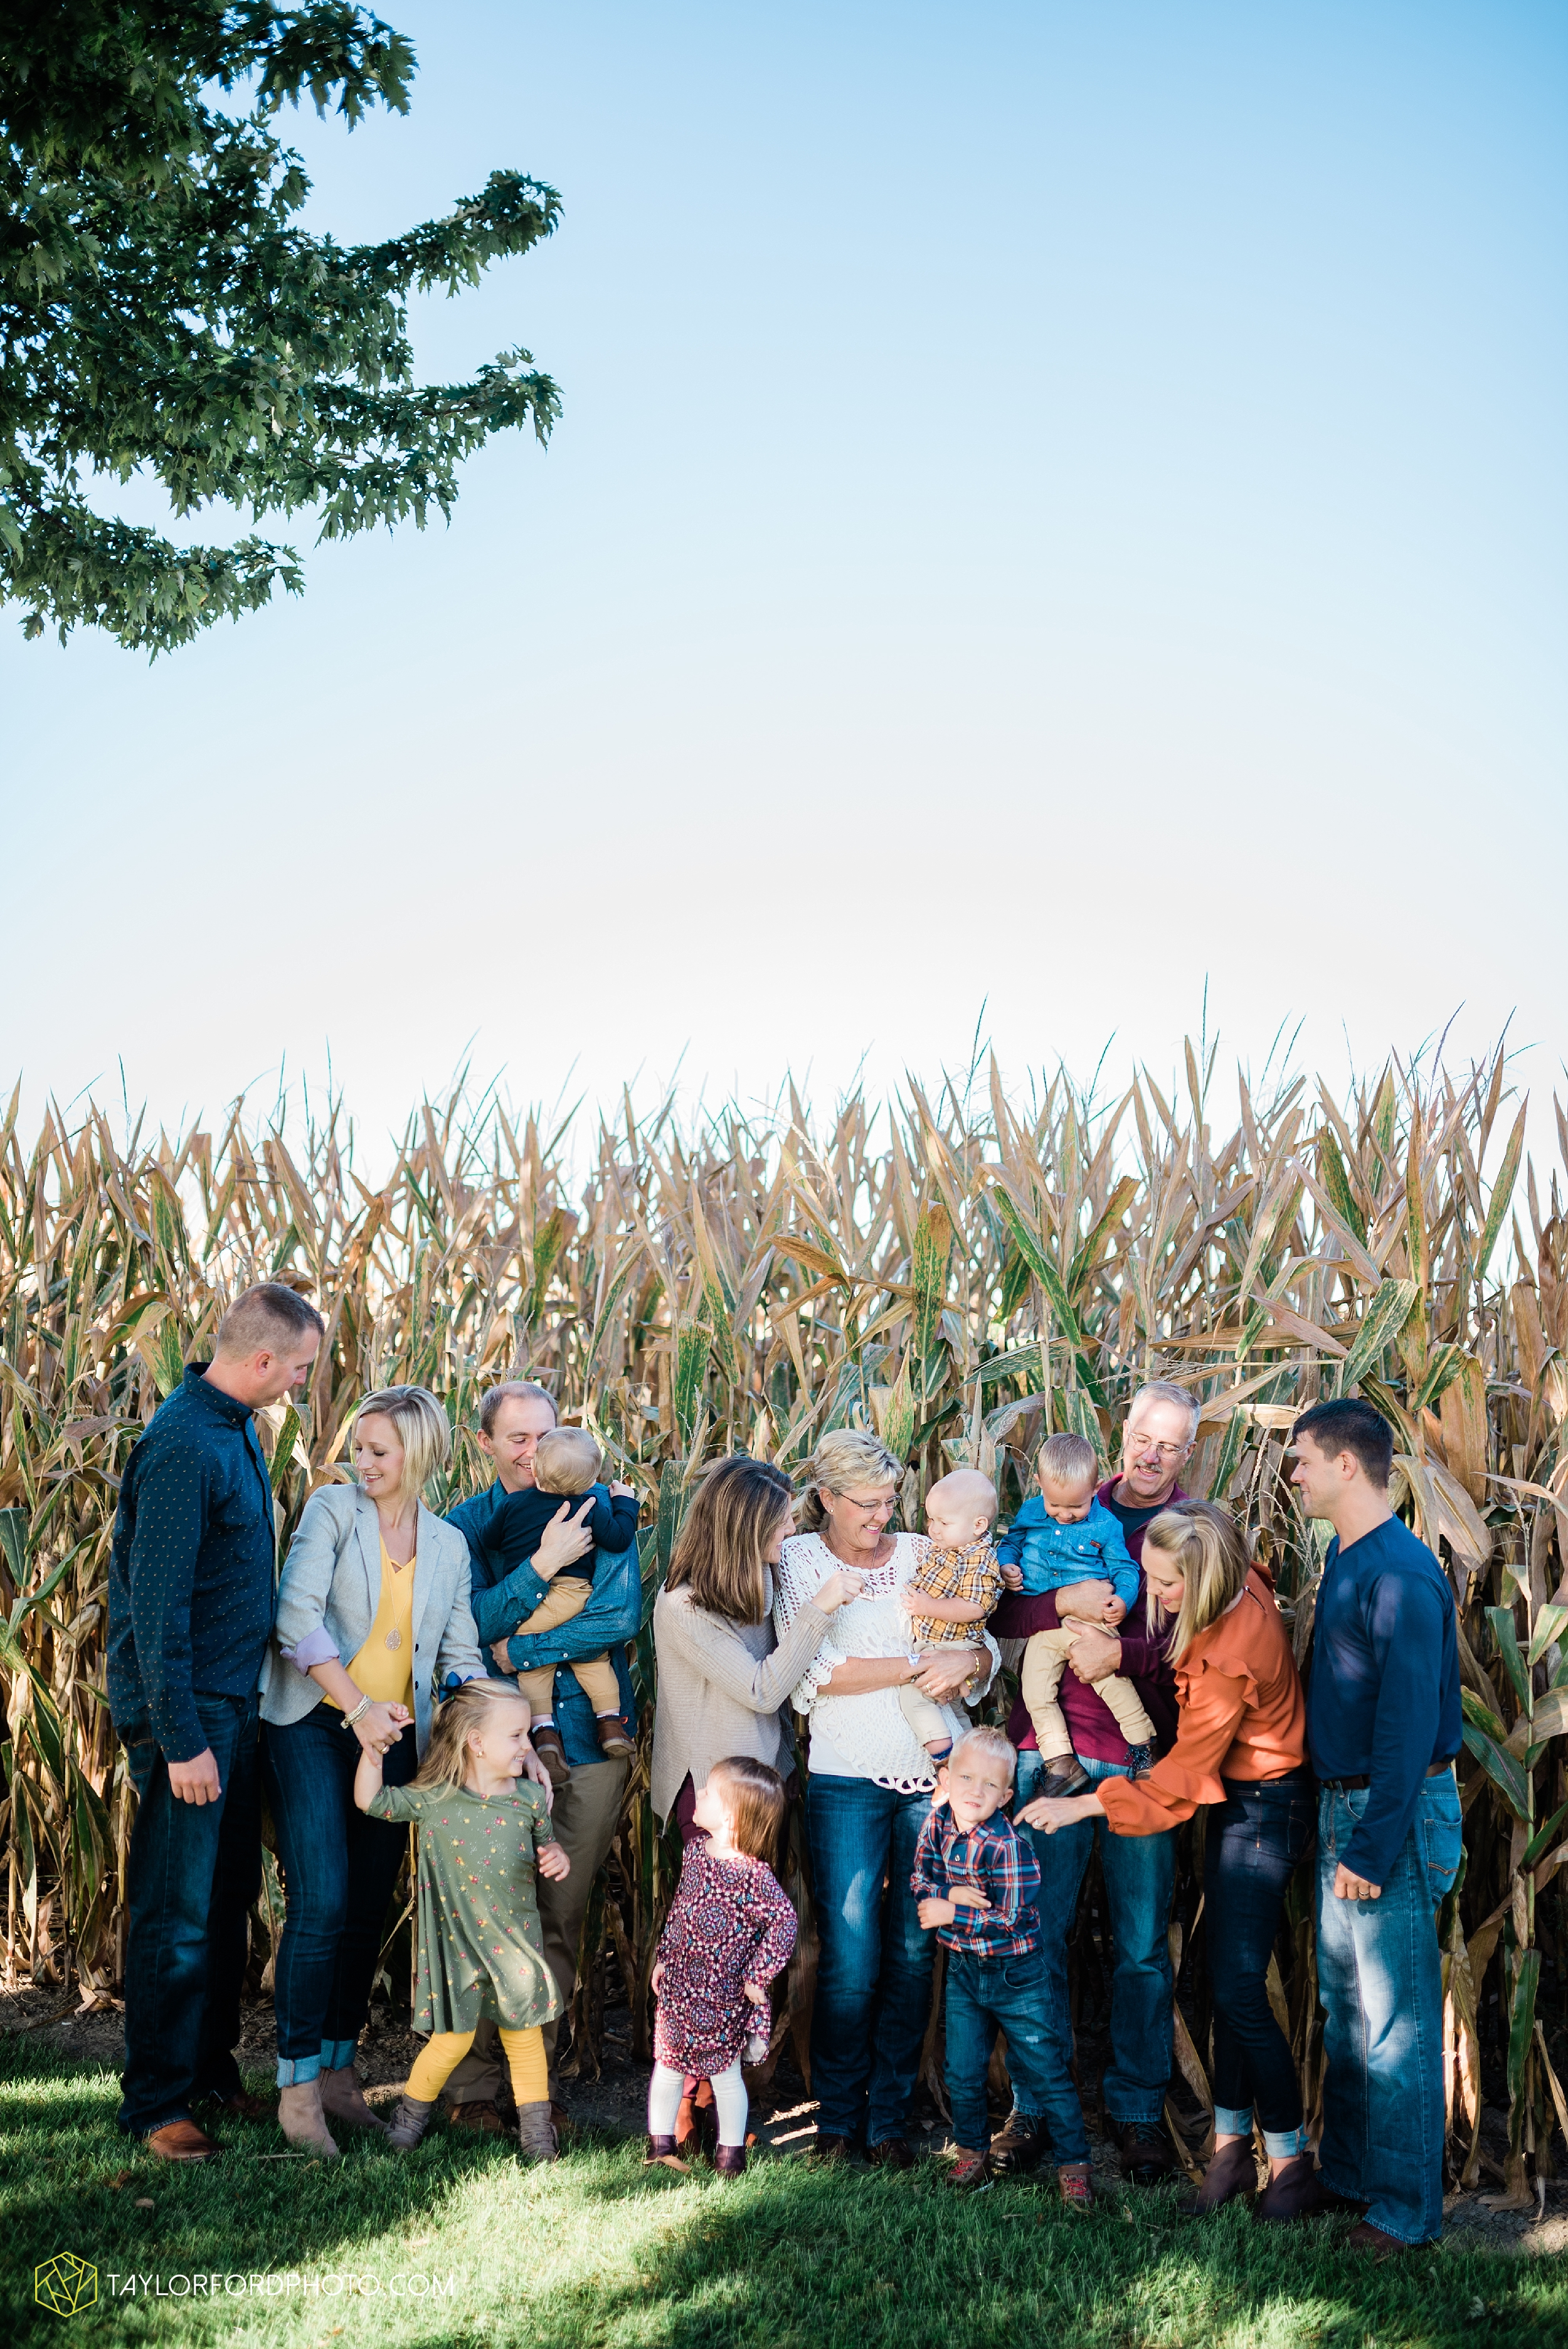 delphos-fort-jennings-ohio-at-home-lifestyle-farm-extended-family-photographer-taylor-ford-photography_0723.jpg